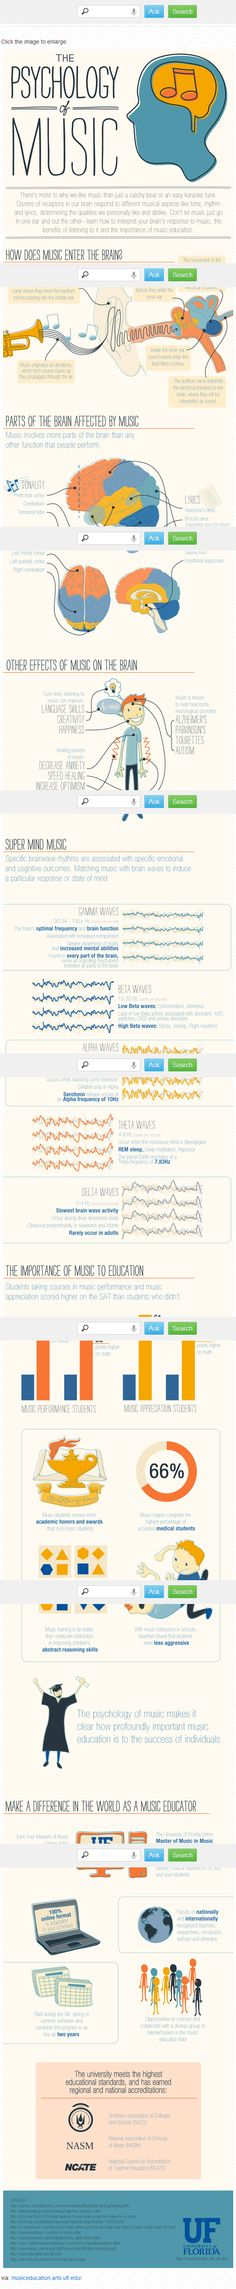 The Psychology of Music by makeuseof.com